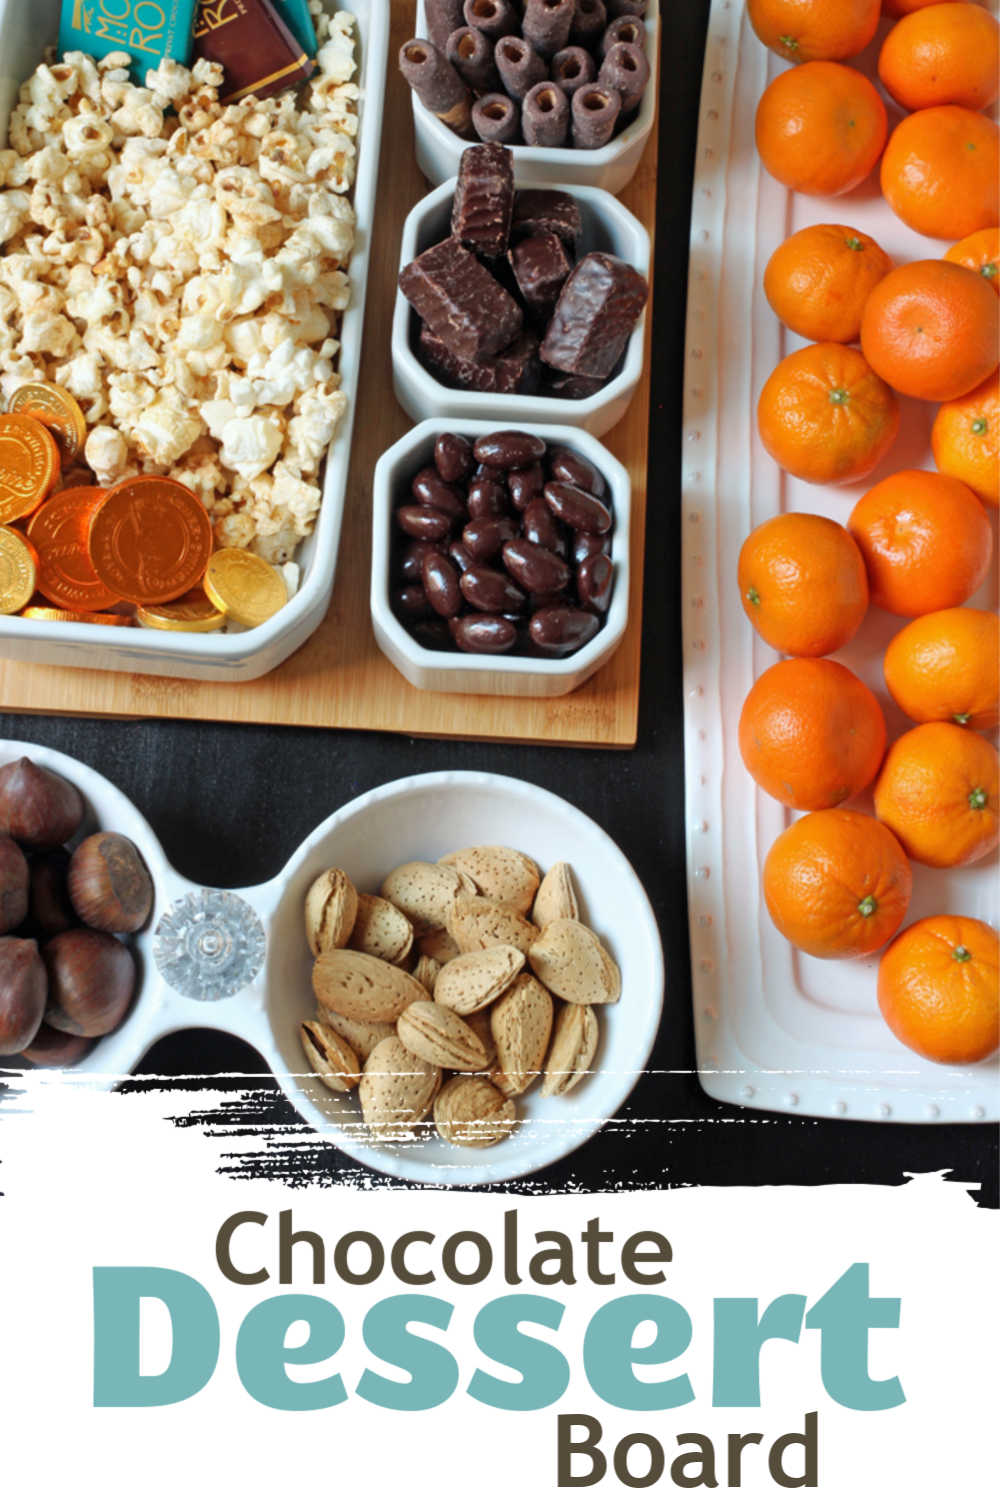 Dishes with different types of chocolate, fruit, and nuts